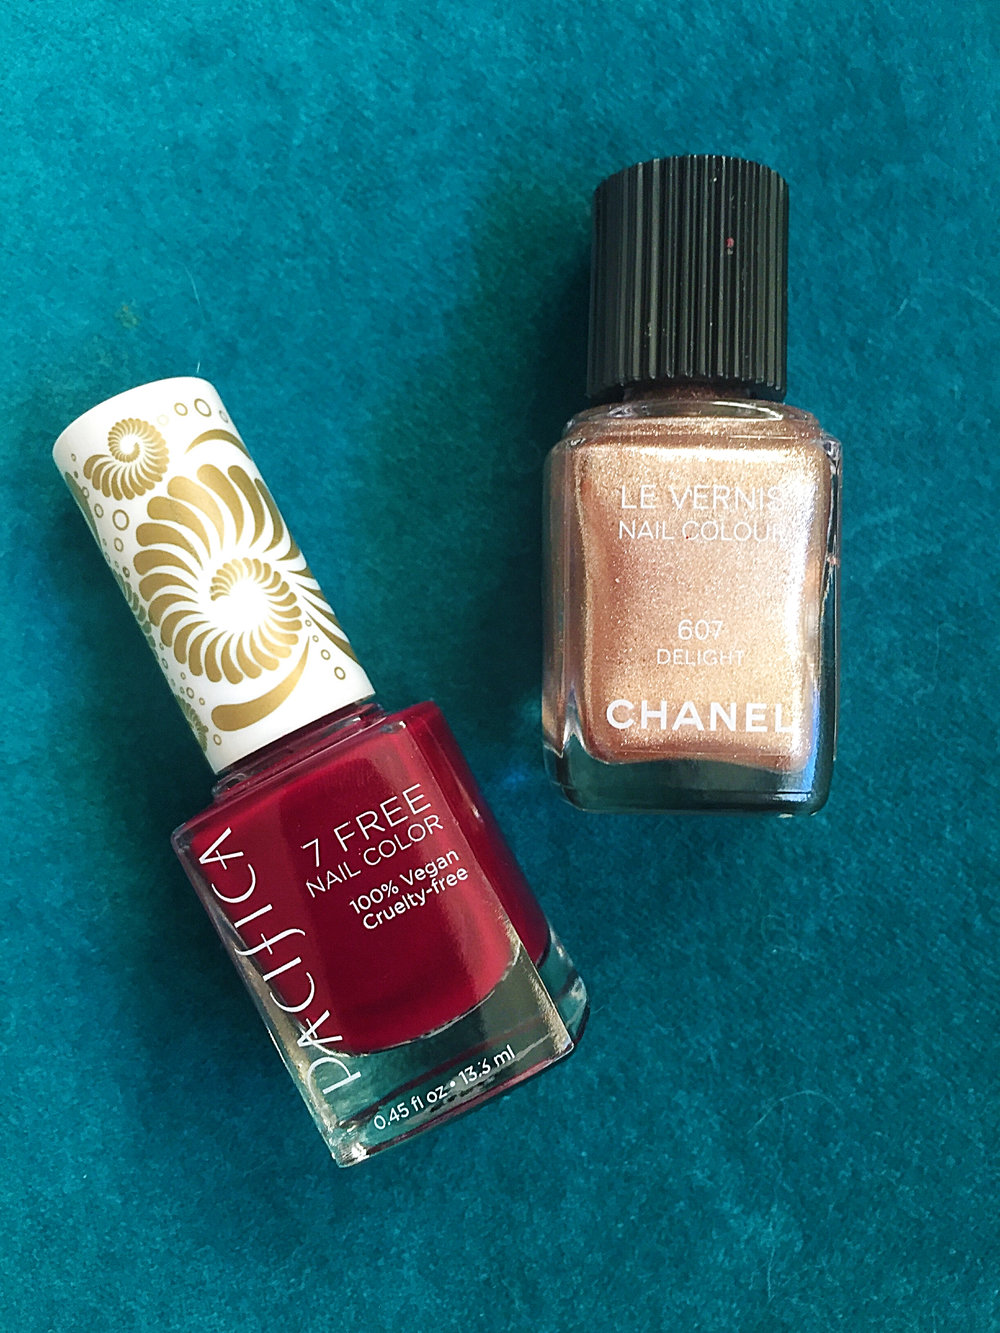 Pacifica Nail Polish in Red Red Wine + Chanel Nail Polish in 607 Delight